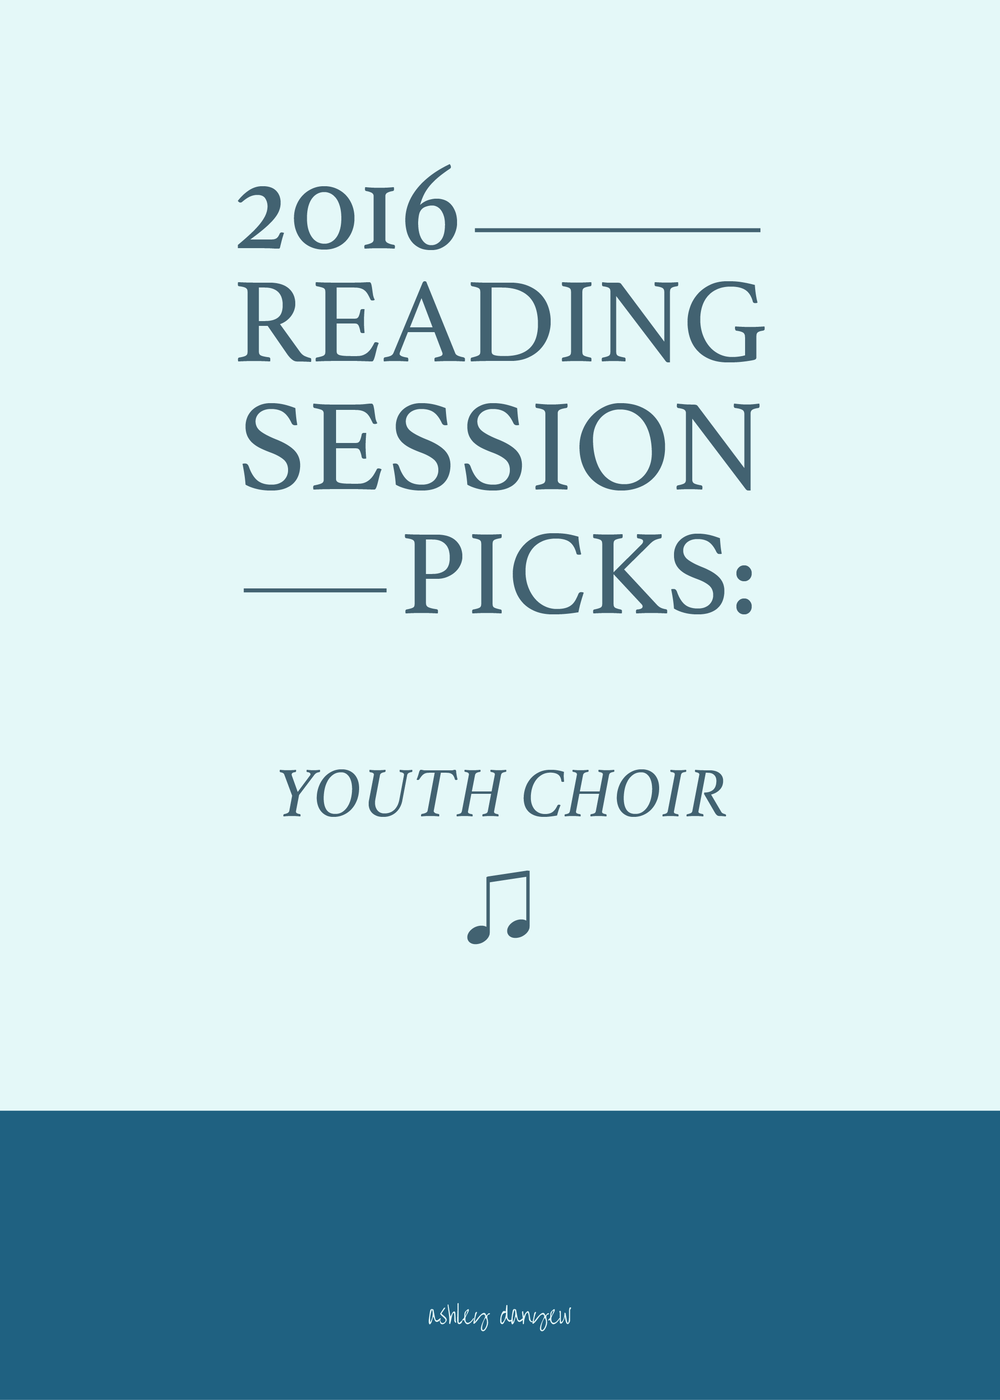 2016 Reading Session Picks - Youth Choir-01.png